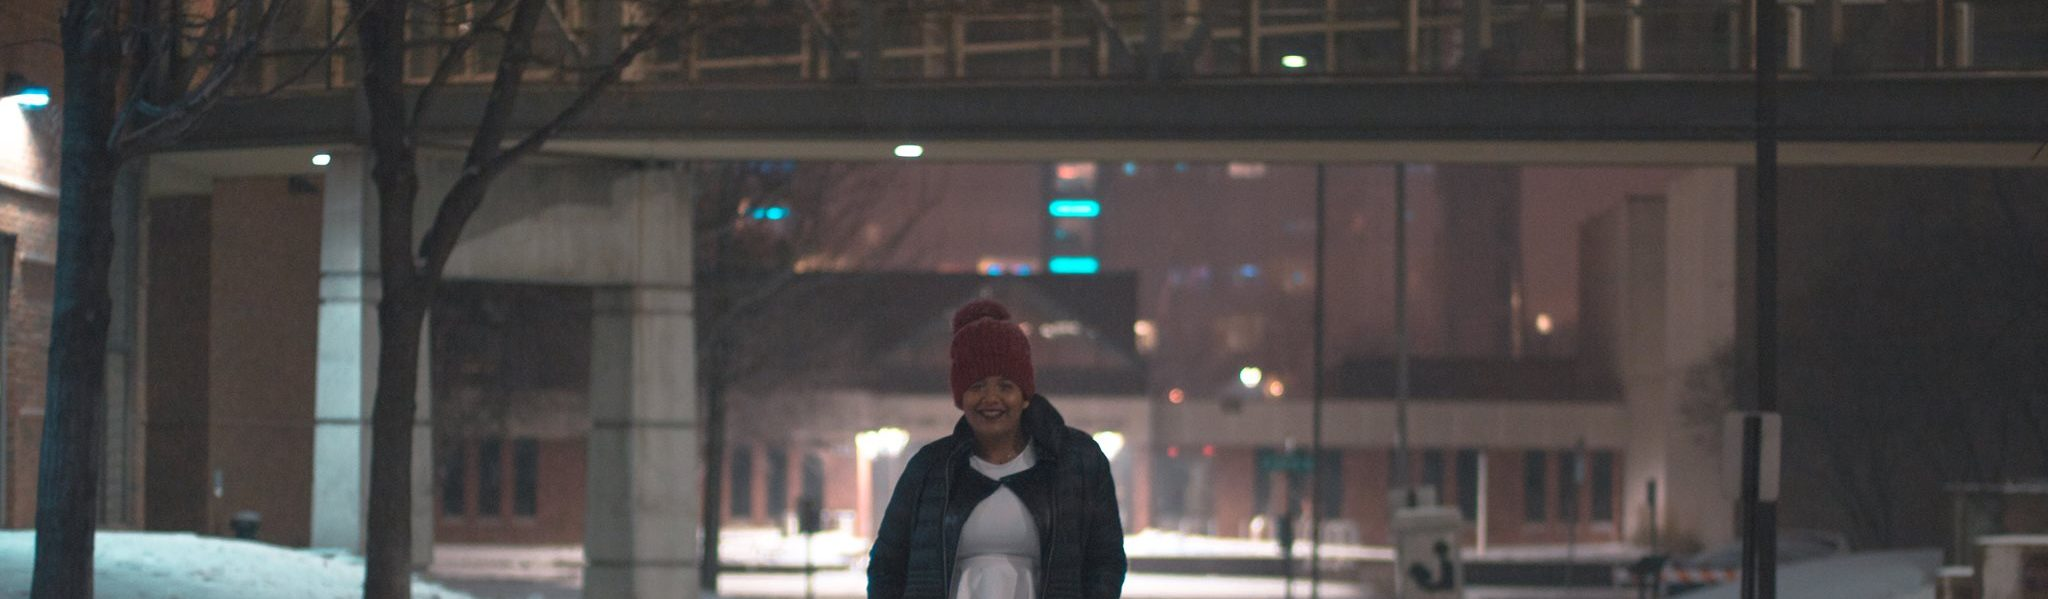 Exchange student poses under one of many skyways at Augsburg University in the snow.